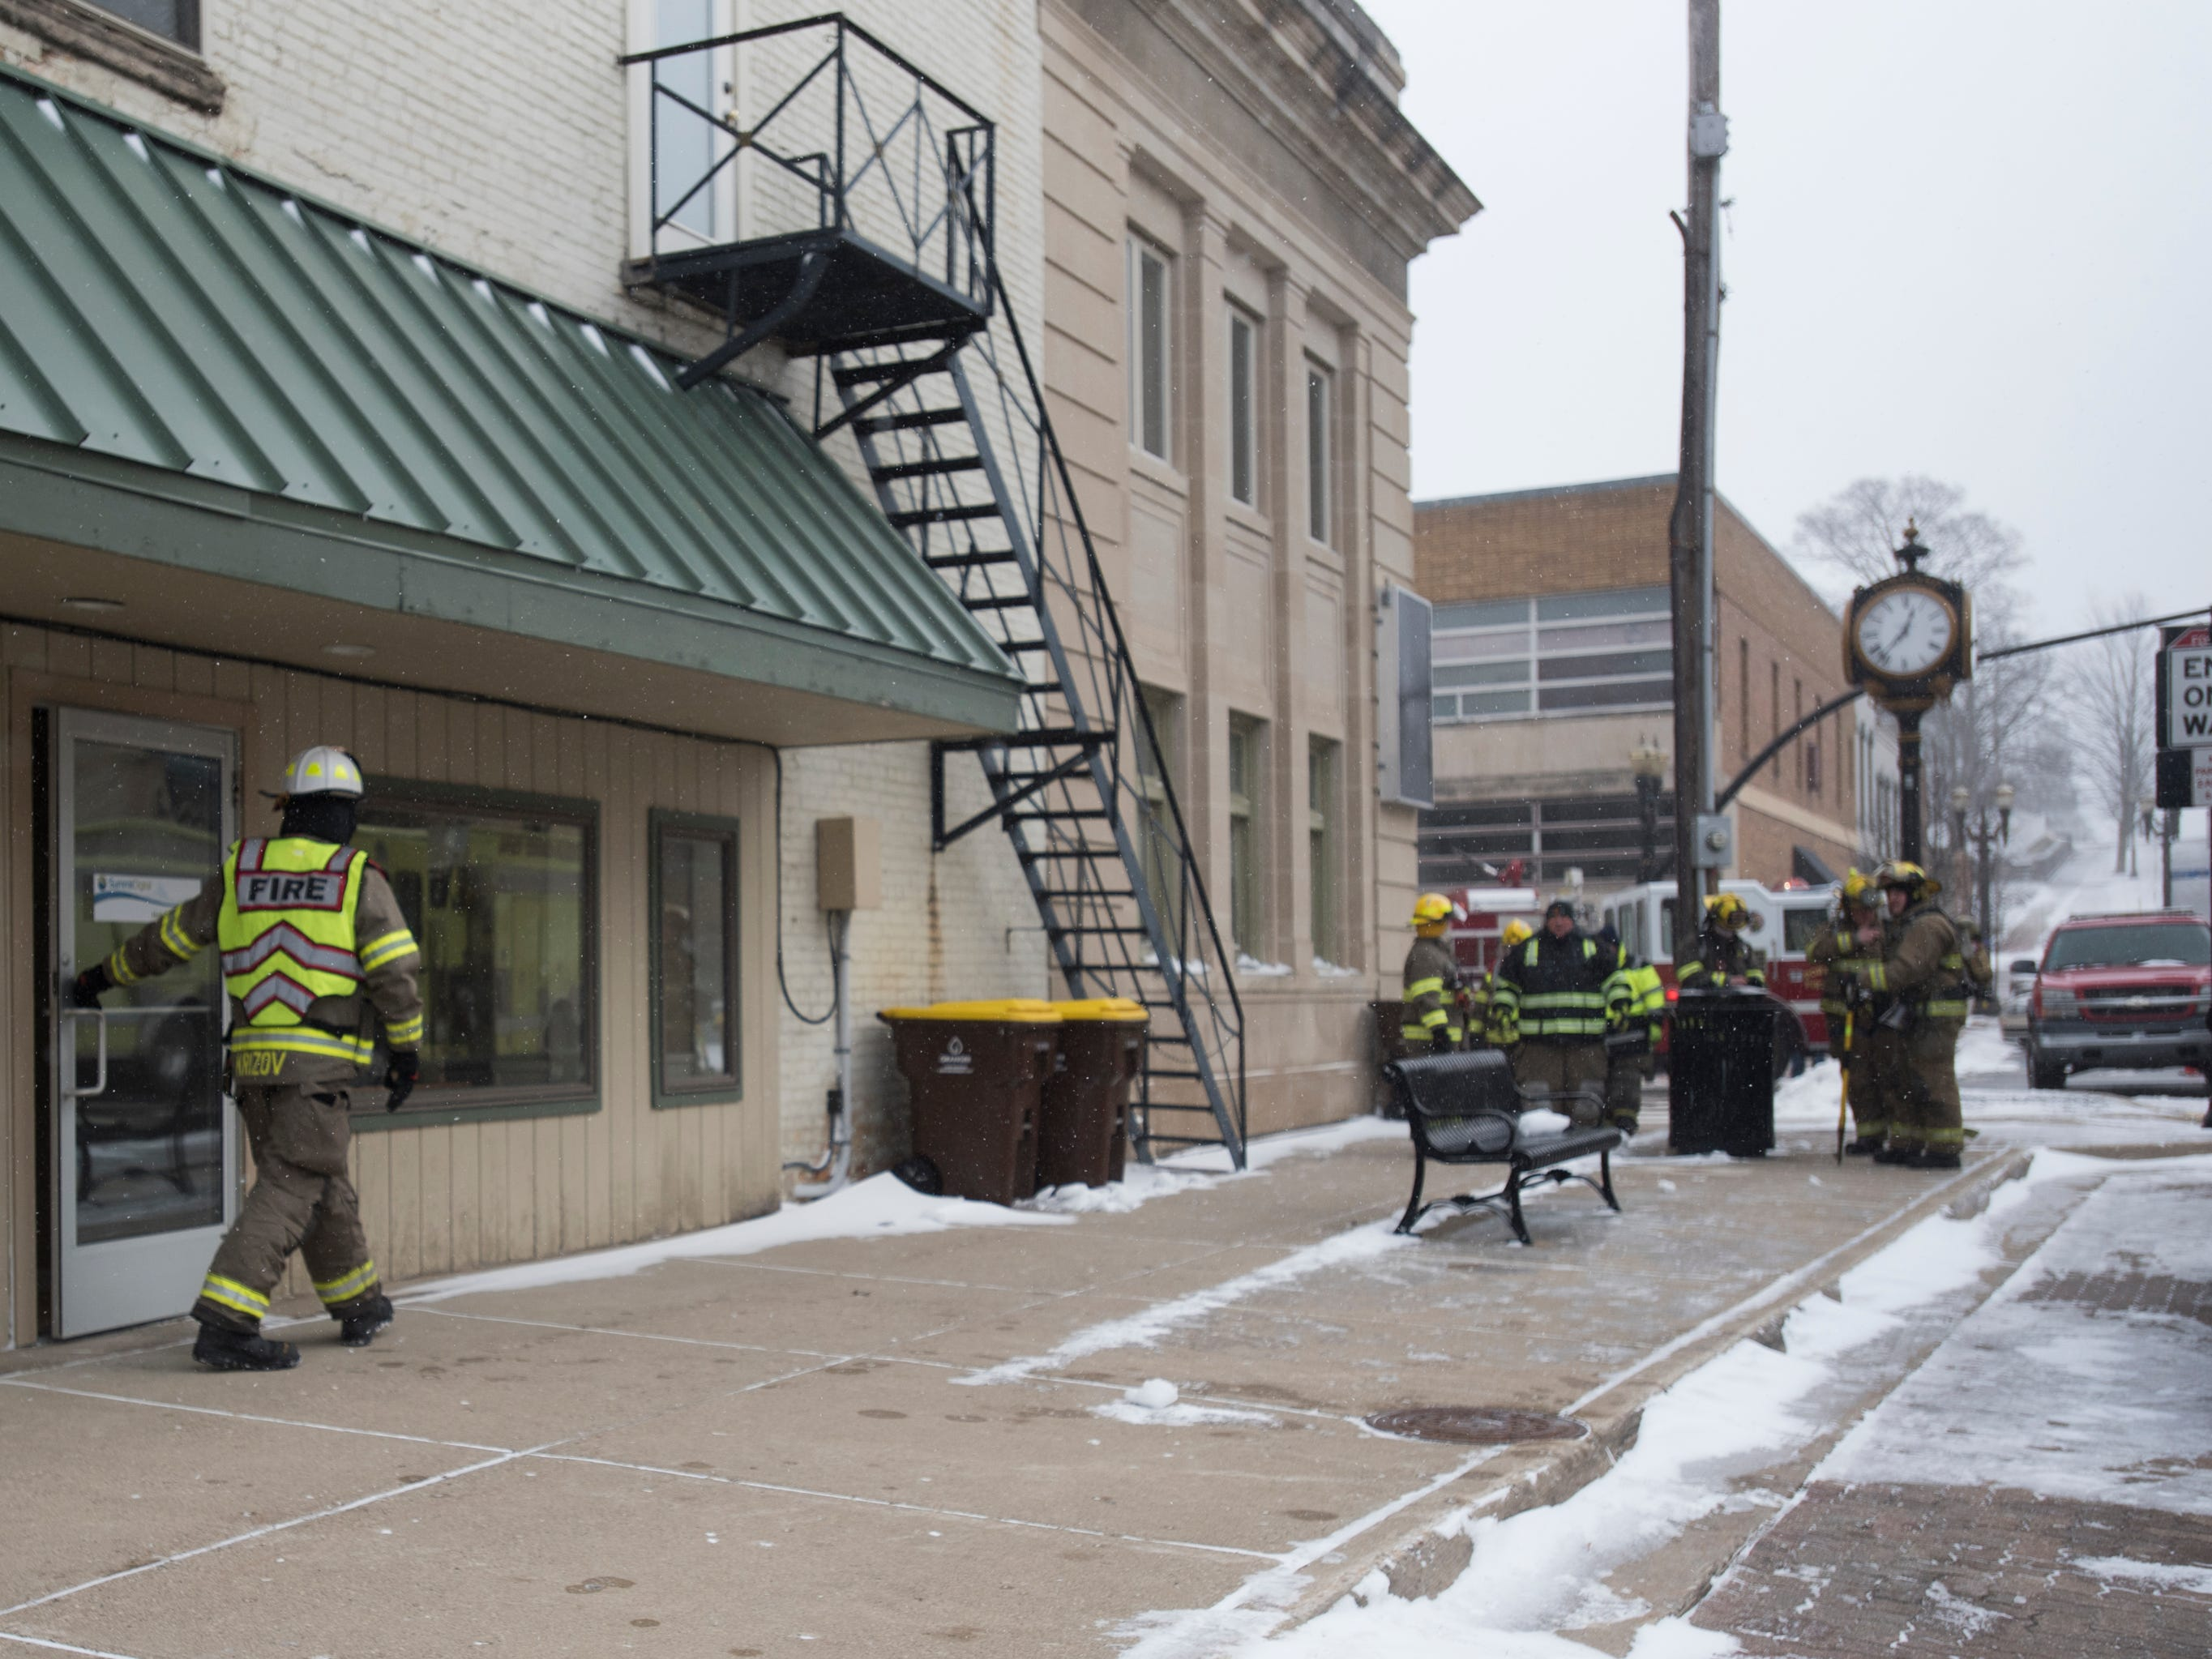 Firefighters go door-to-door at businesses and residences in downtown Portland, Michigan, near Kent Street and East Grand River River, evacuating people as smoke was reported in a building along Kent Street.